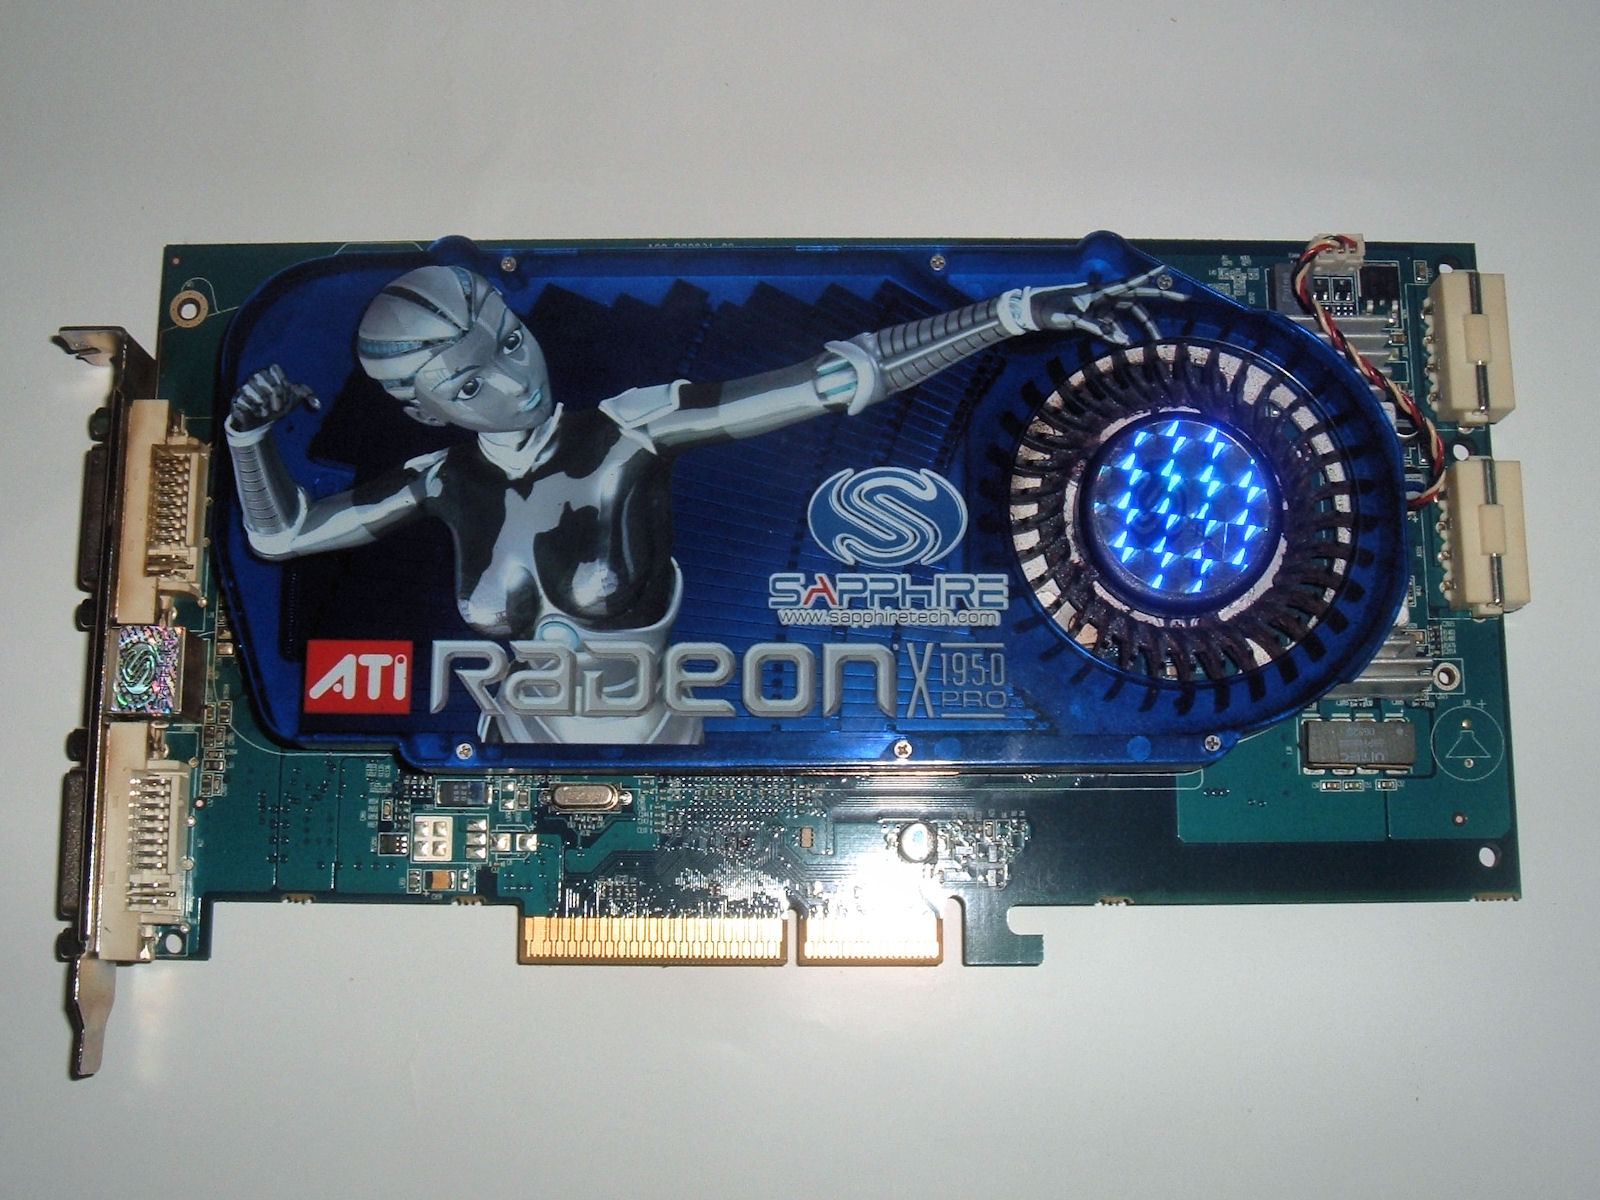 ATI RADEON X1900 SERIES (MICROSOFT CORPORATION - WDDM) WINDOWS 7 X64 TREIBER